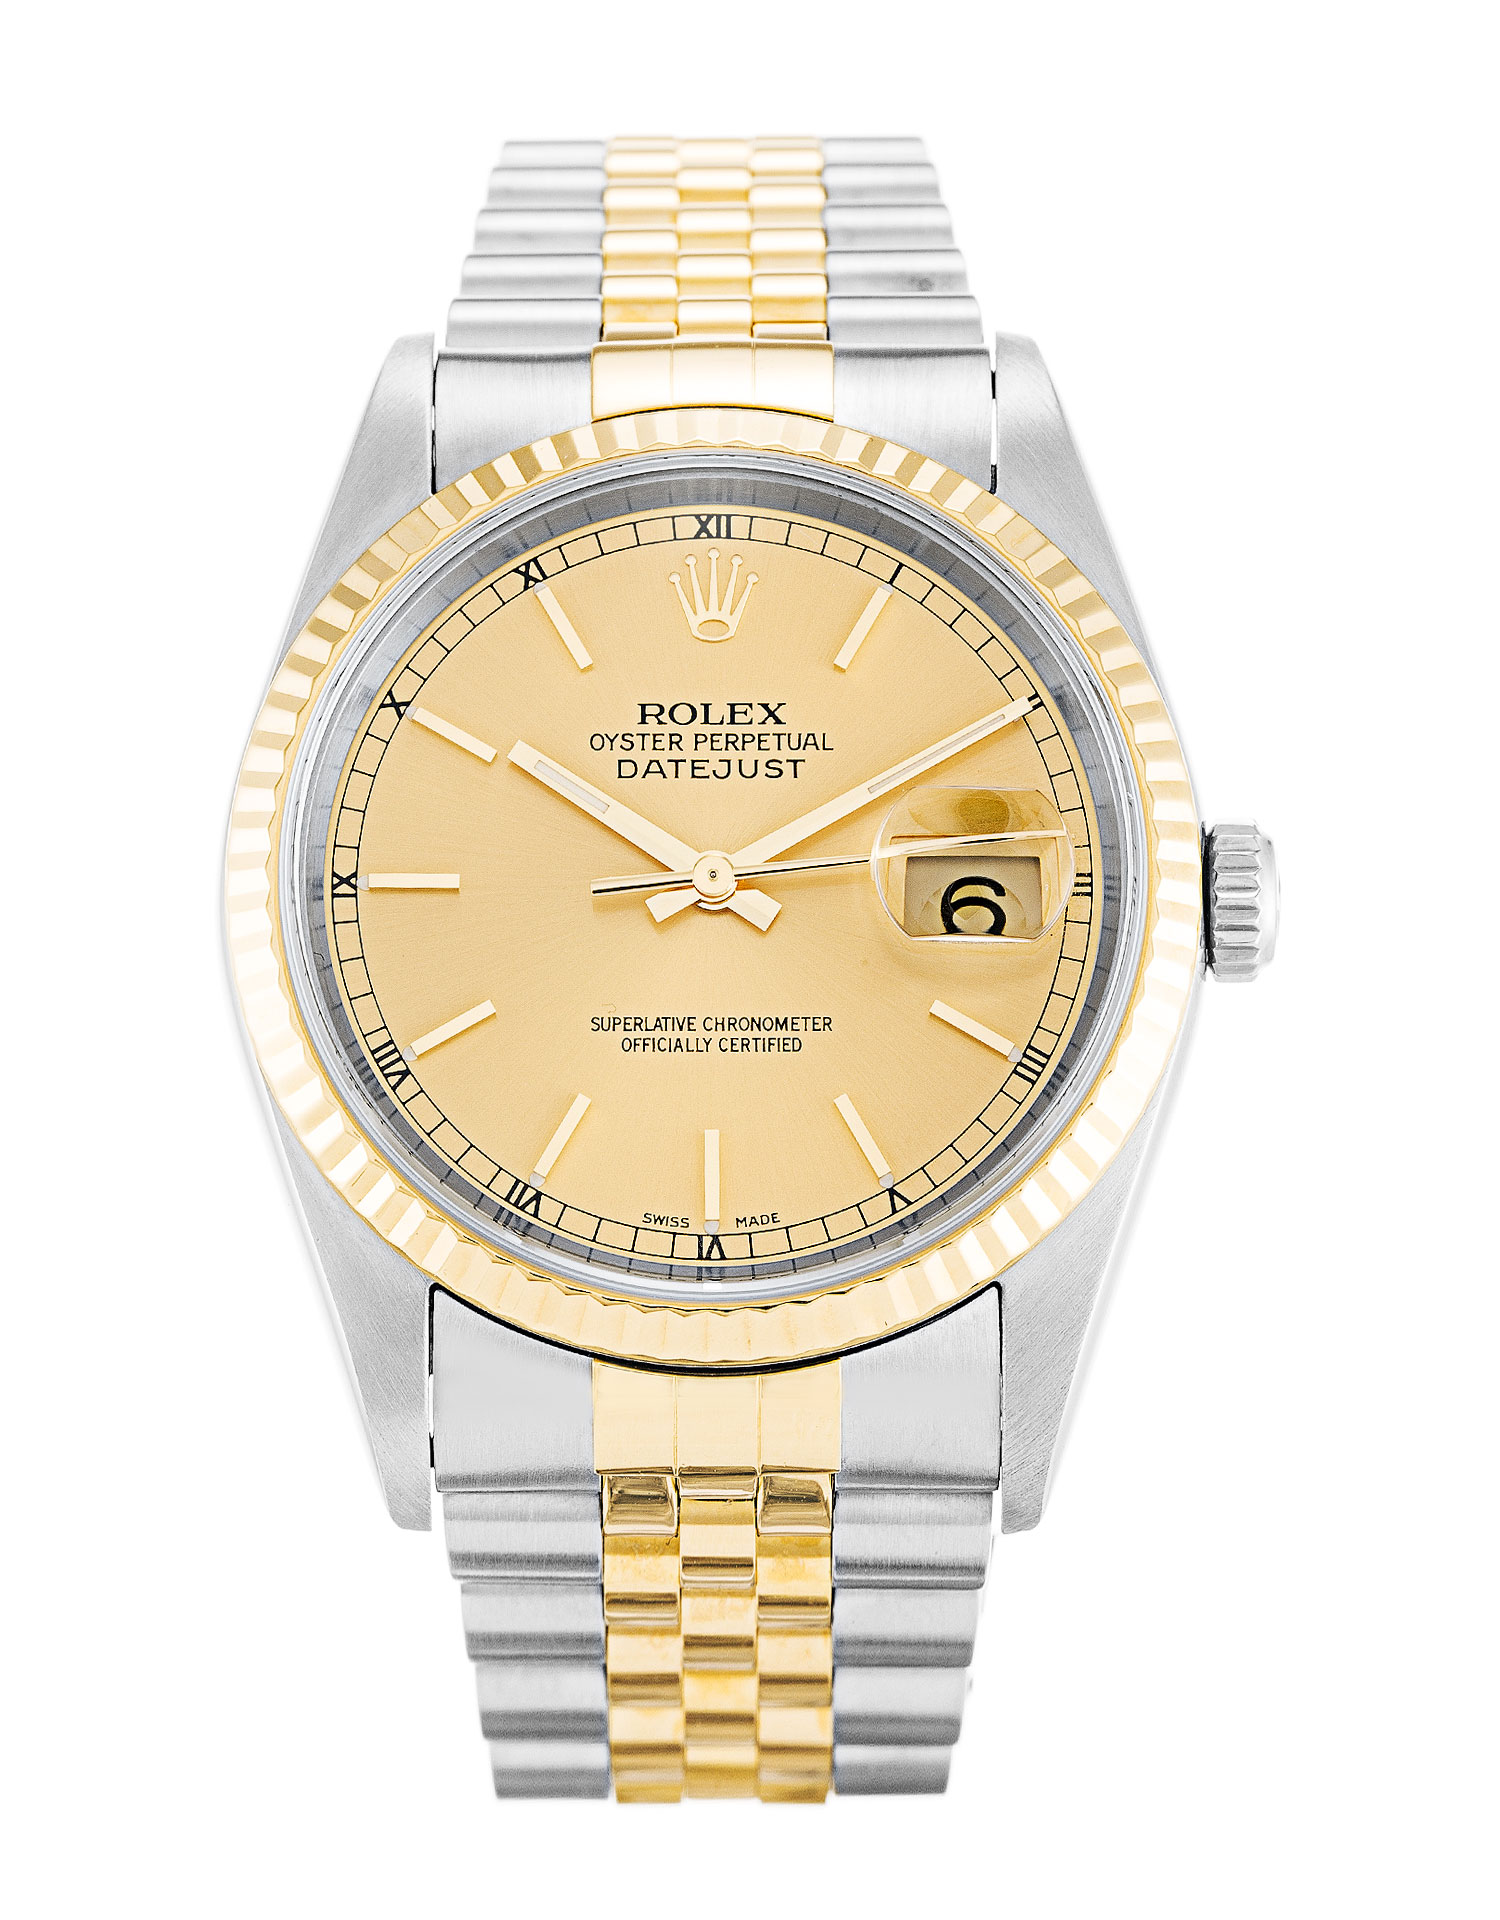 Rolex Datejust 16233 Mens 36 Mm Steel & Yellow Gold Case Automatic Movement – iapac.to